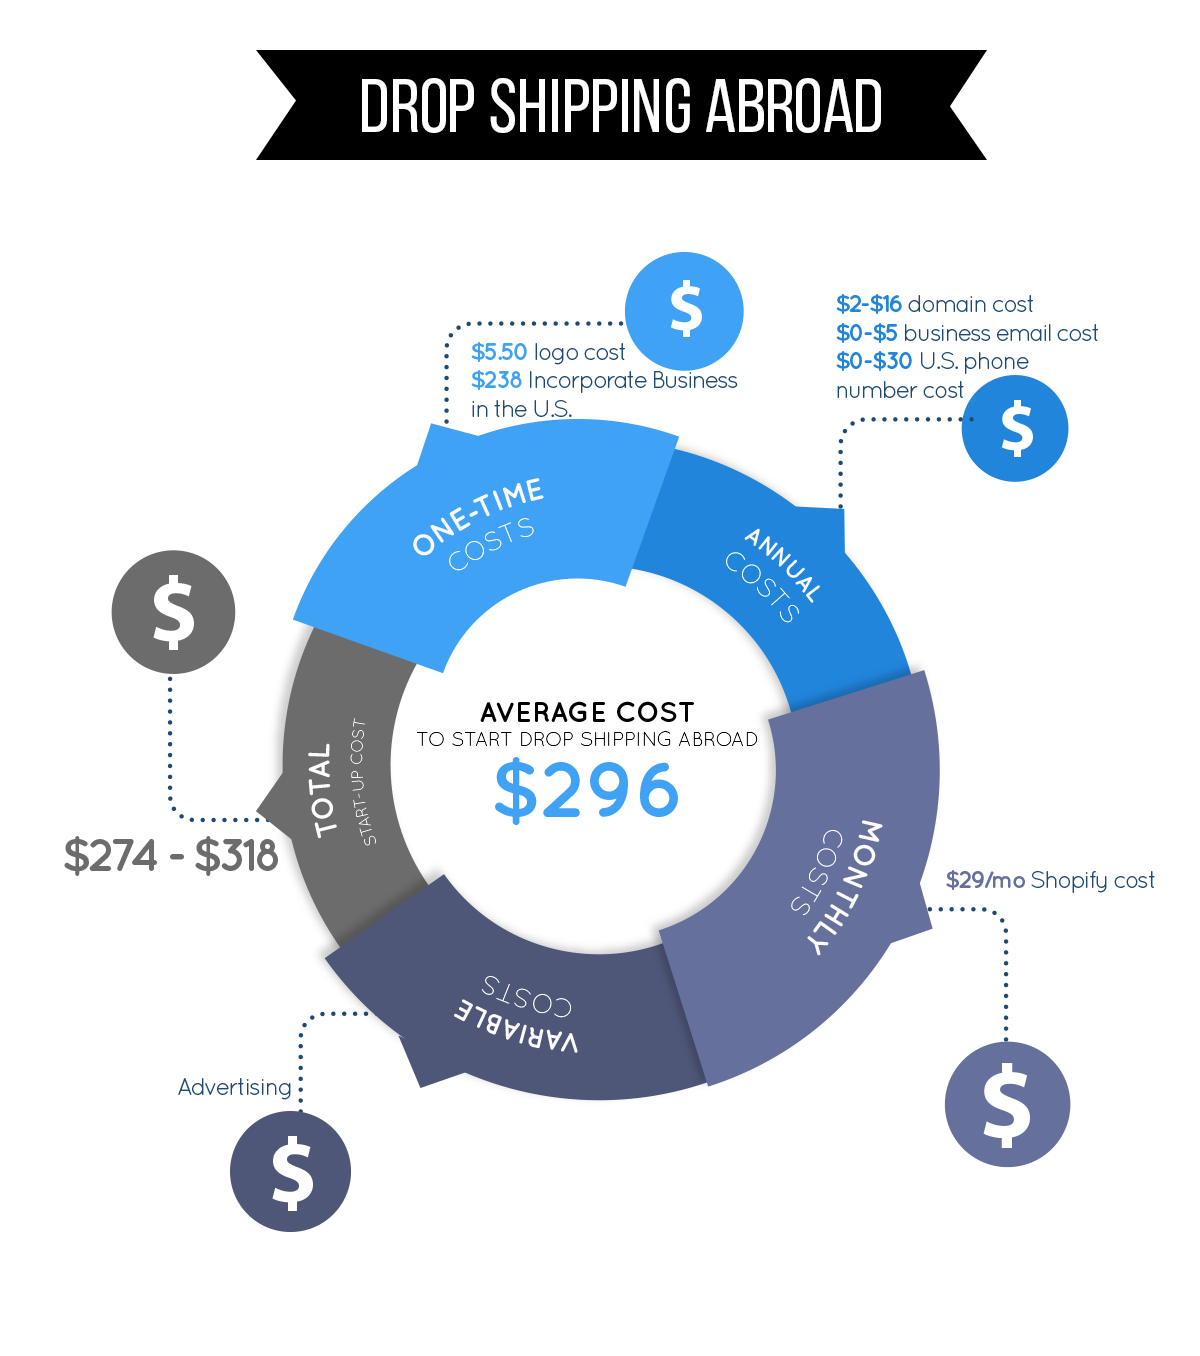 dropshipping abroad